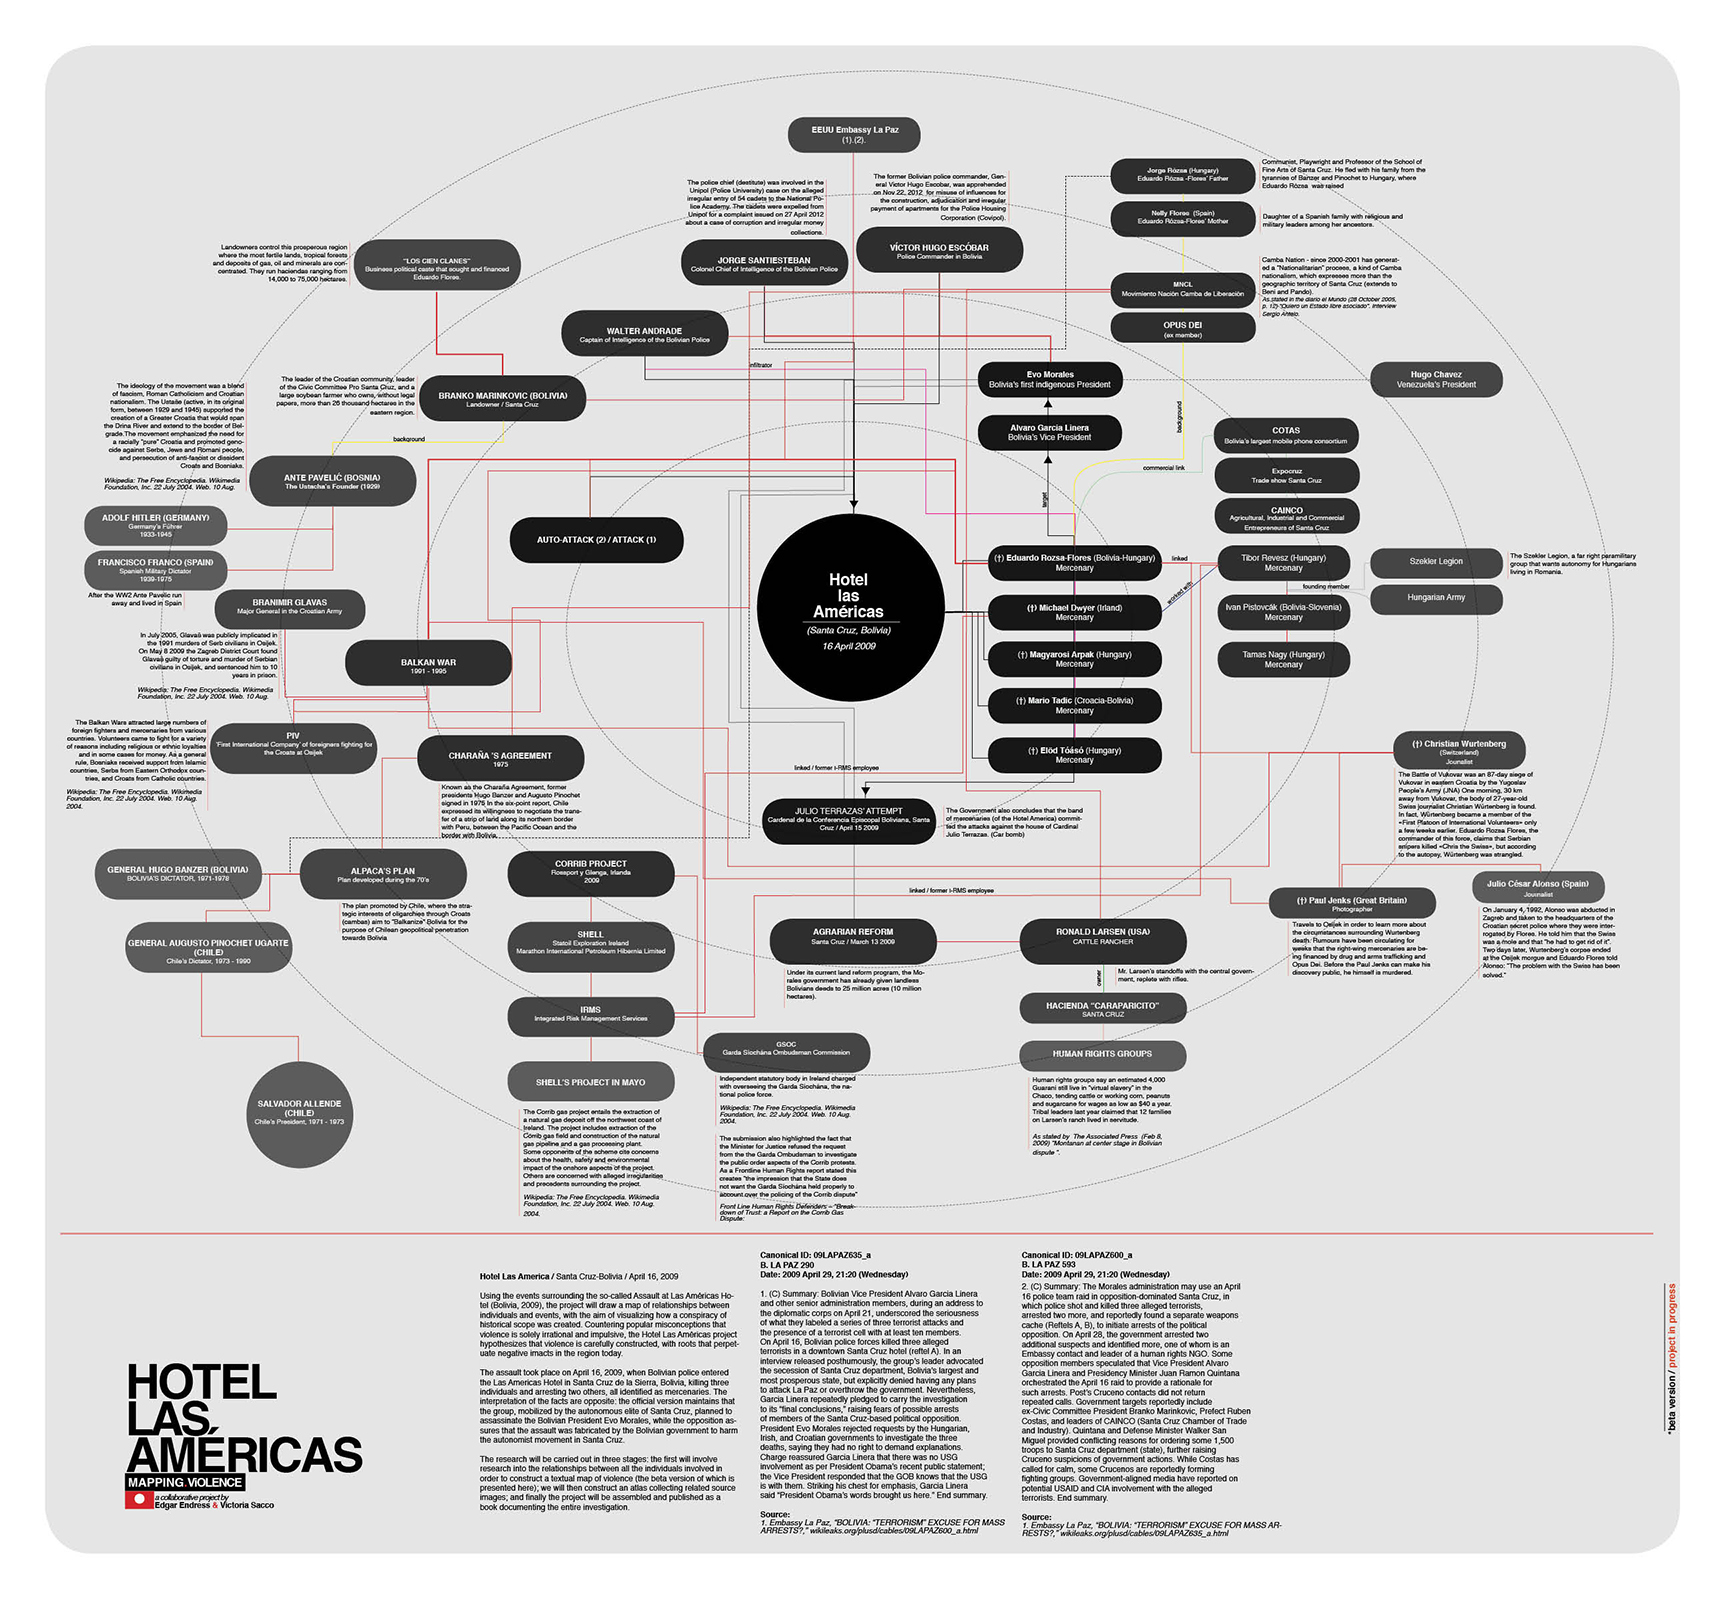 Hotel Las Americas / mapping violence (beta map in collaboration with Victoria Sacco) /  project link